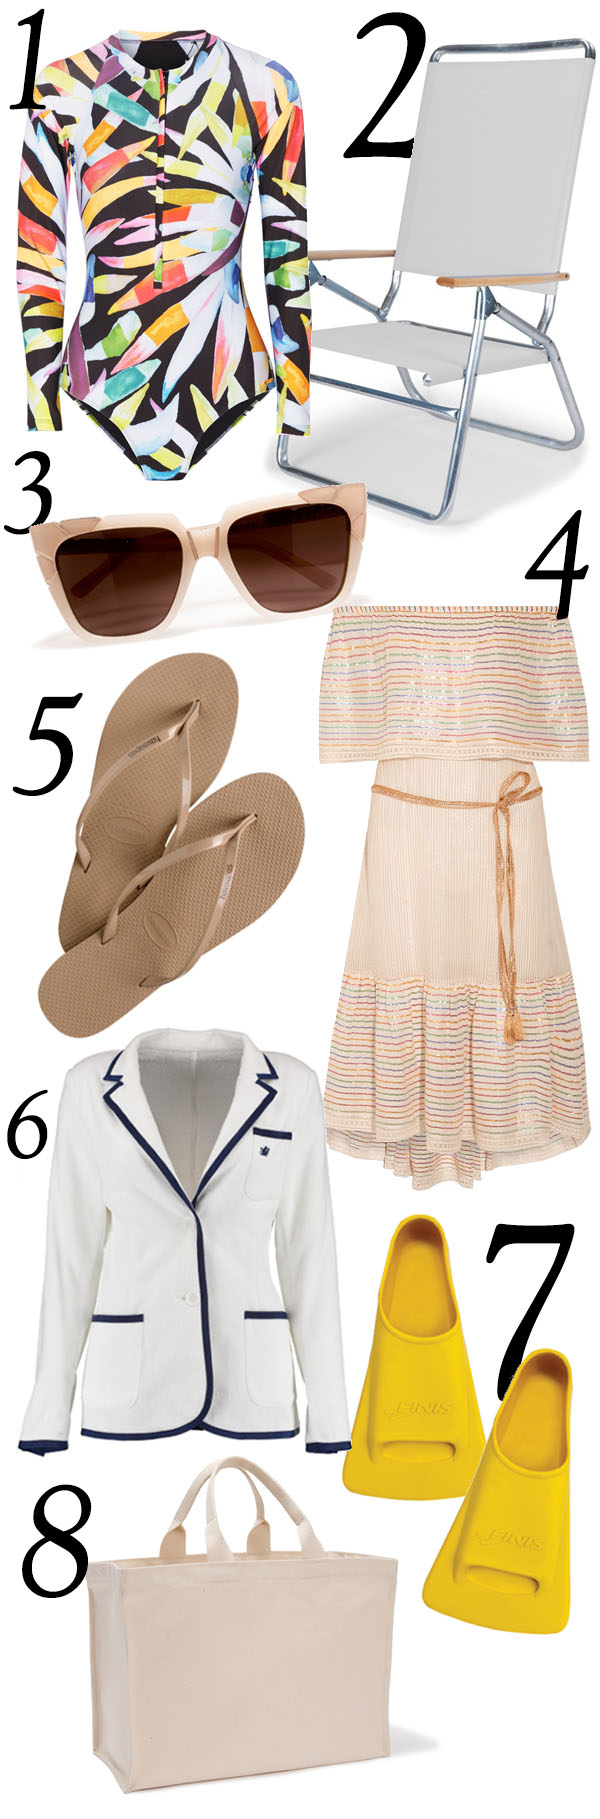 CMSPage_Things We Love | Beachwear & How-To Care_ONE_SIZE_IMAGE_01